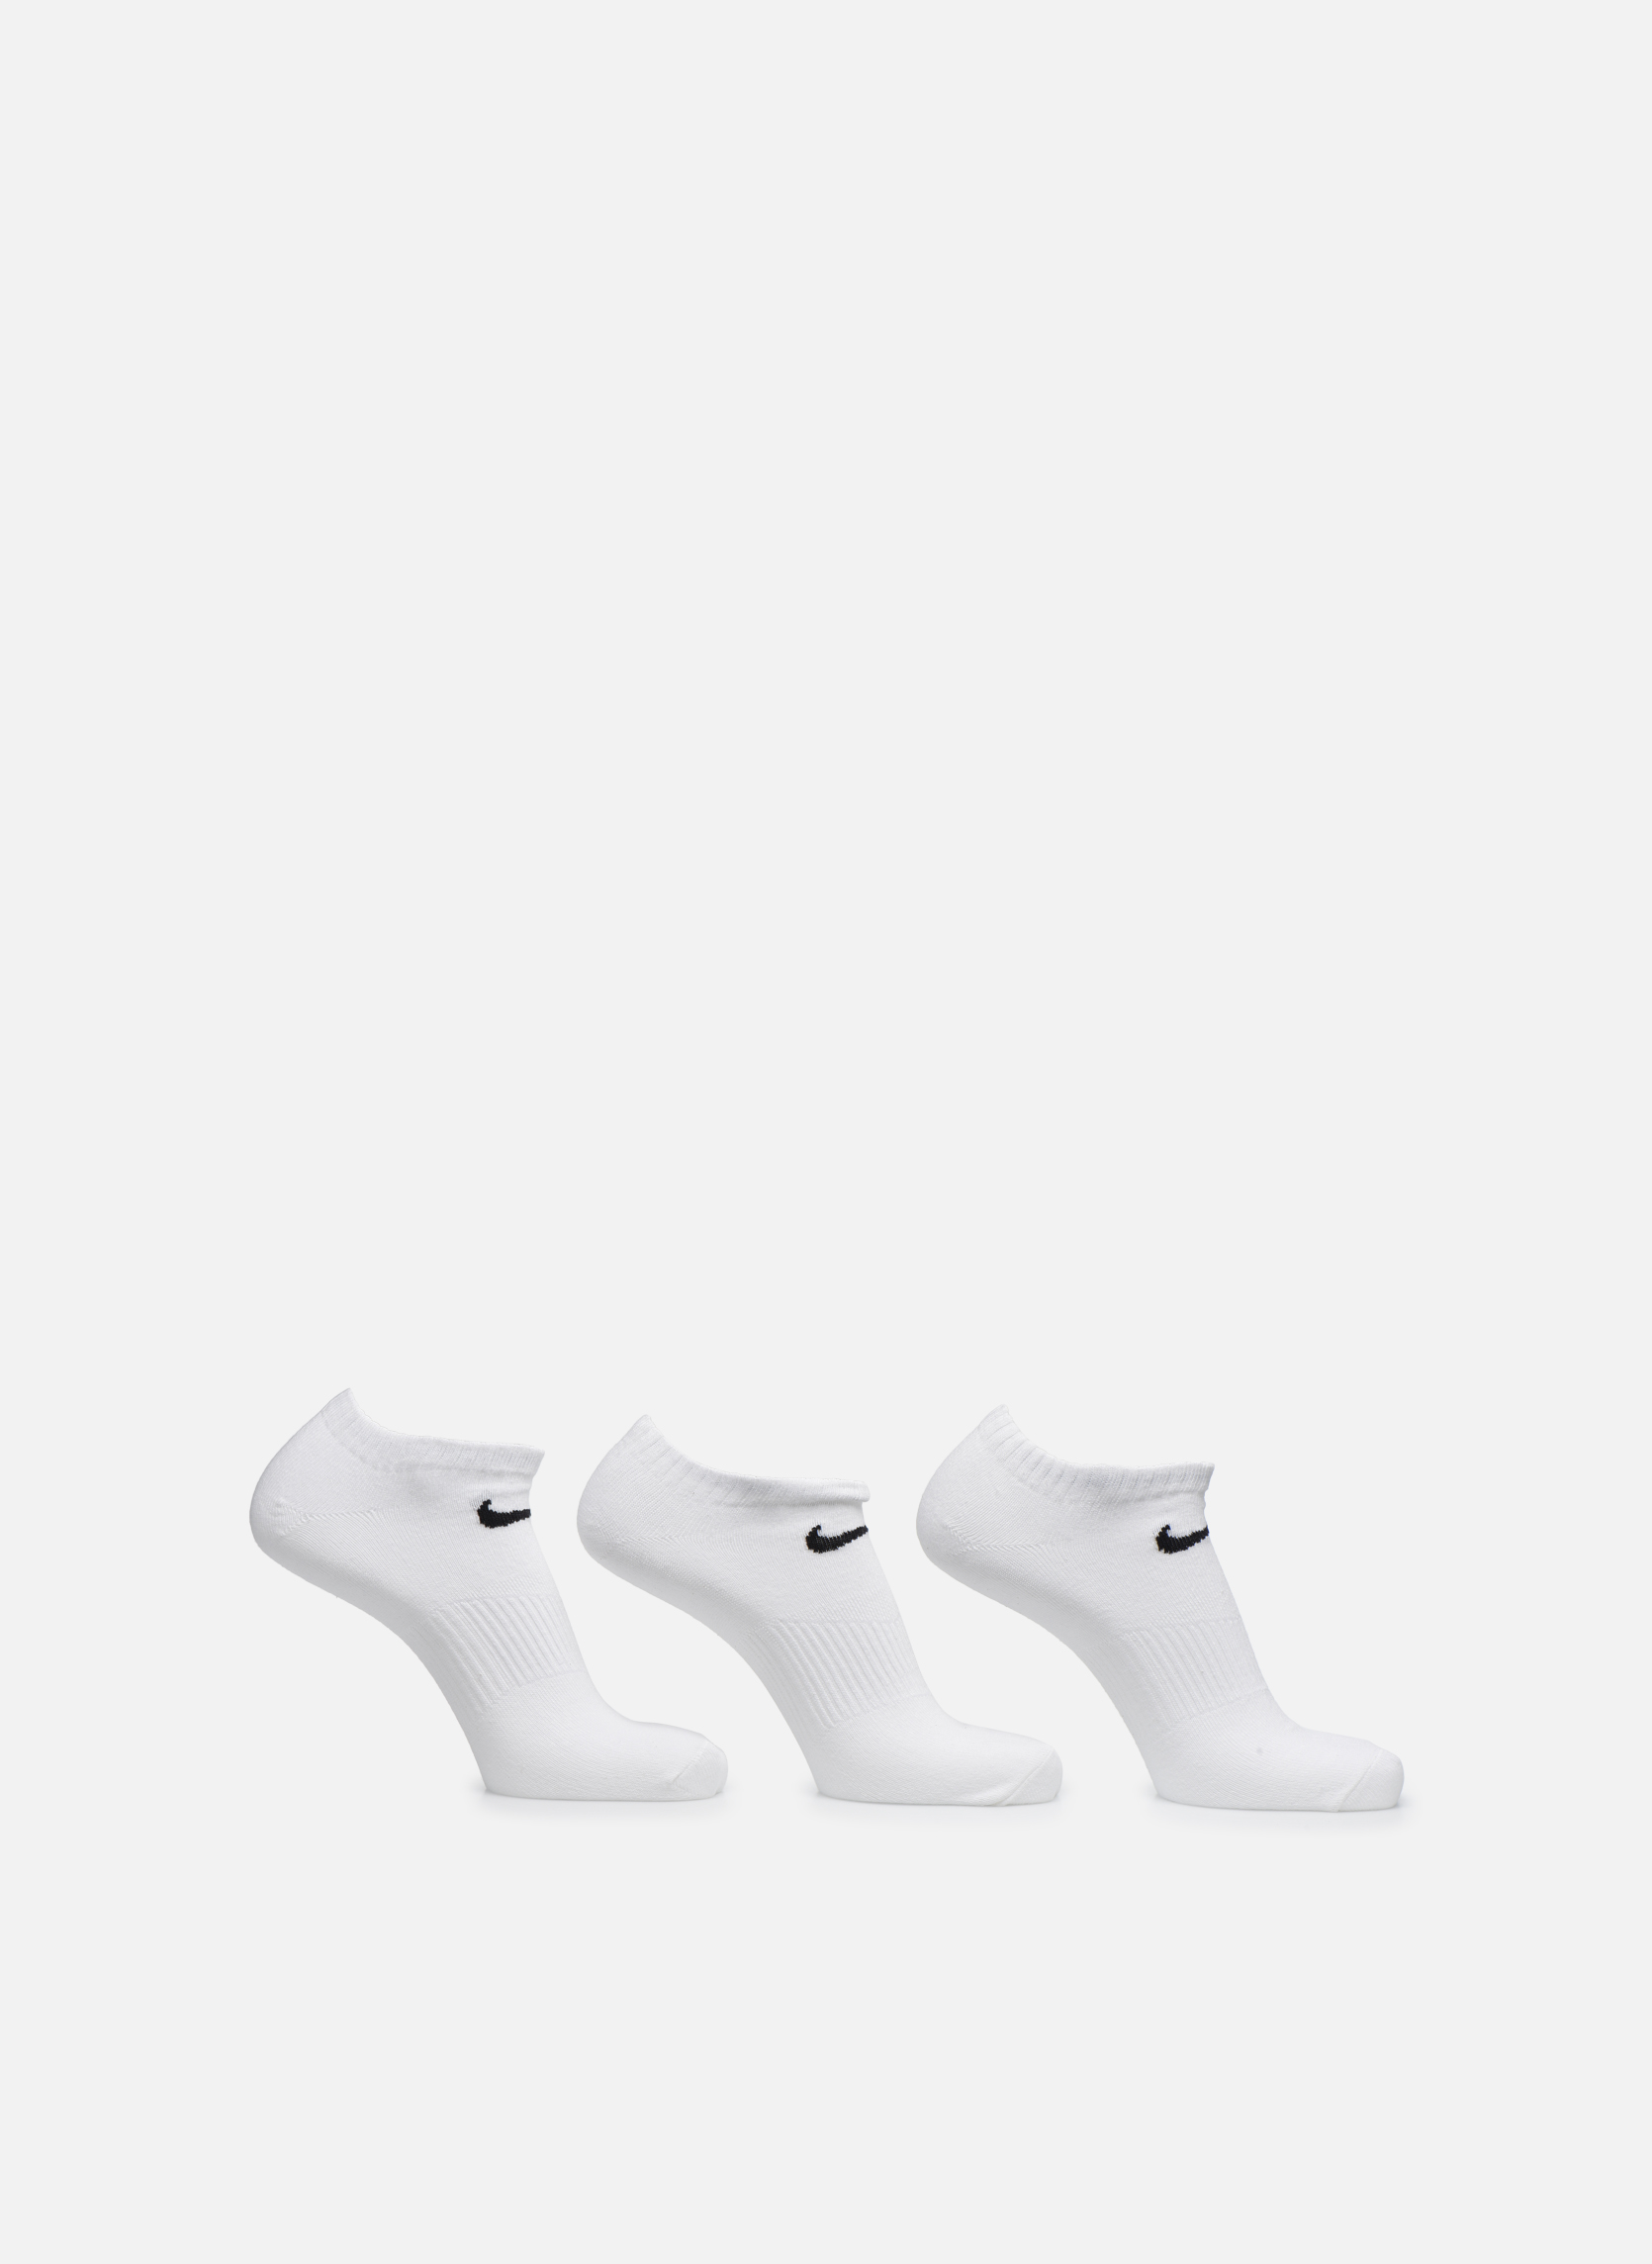 Unisex Nike Performance Lightweight No Show Training Sock 3PR